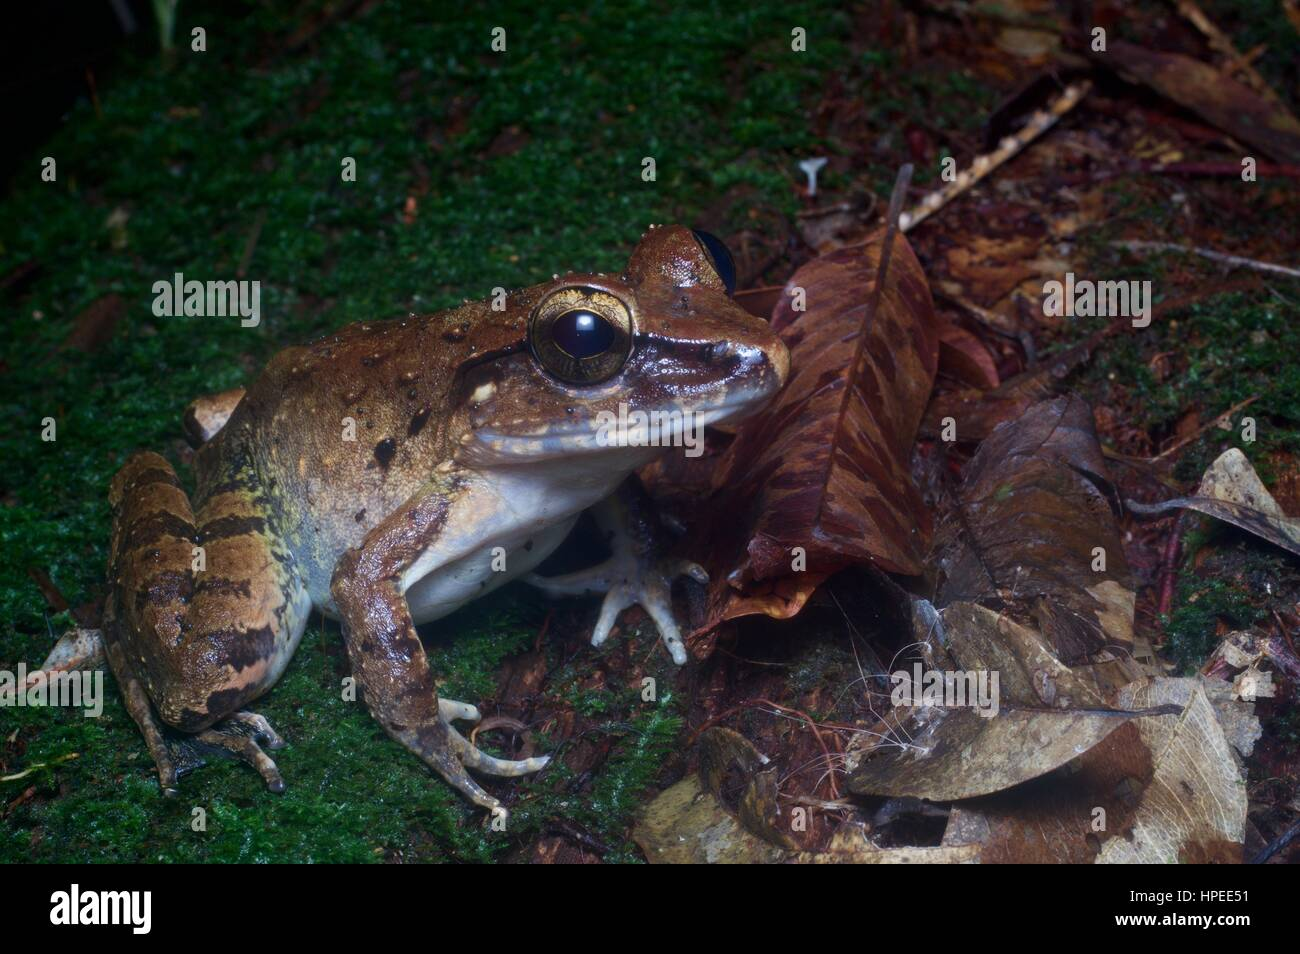 A Giant River Frog (Limnonectes leporinus) in the rainforest at night in Kubah National Park, Sarawak, Borneo - Stock Image